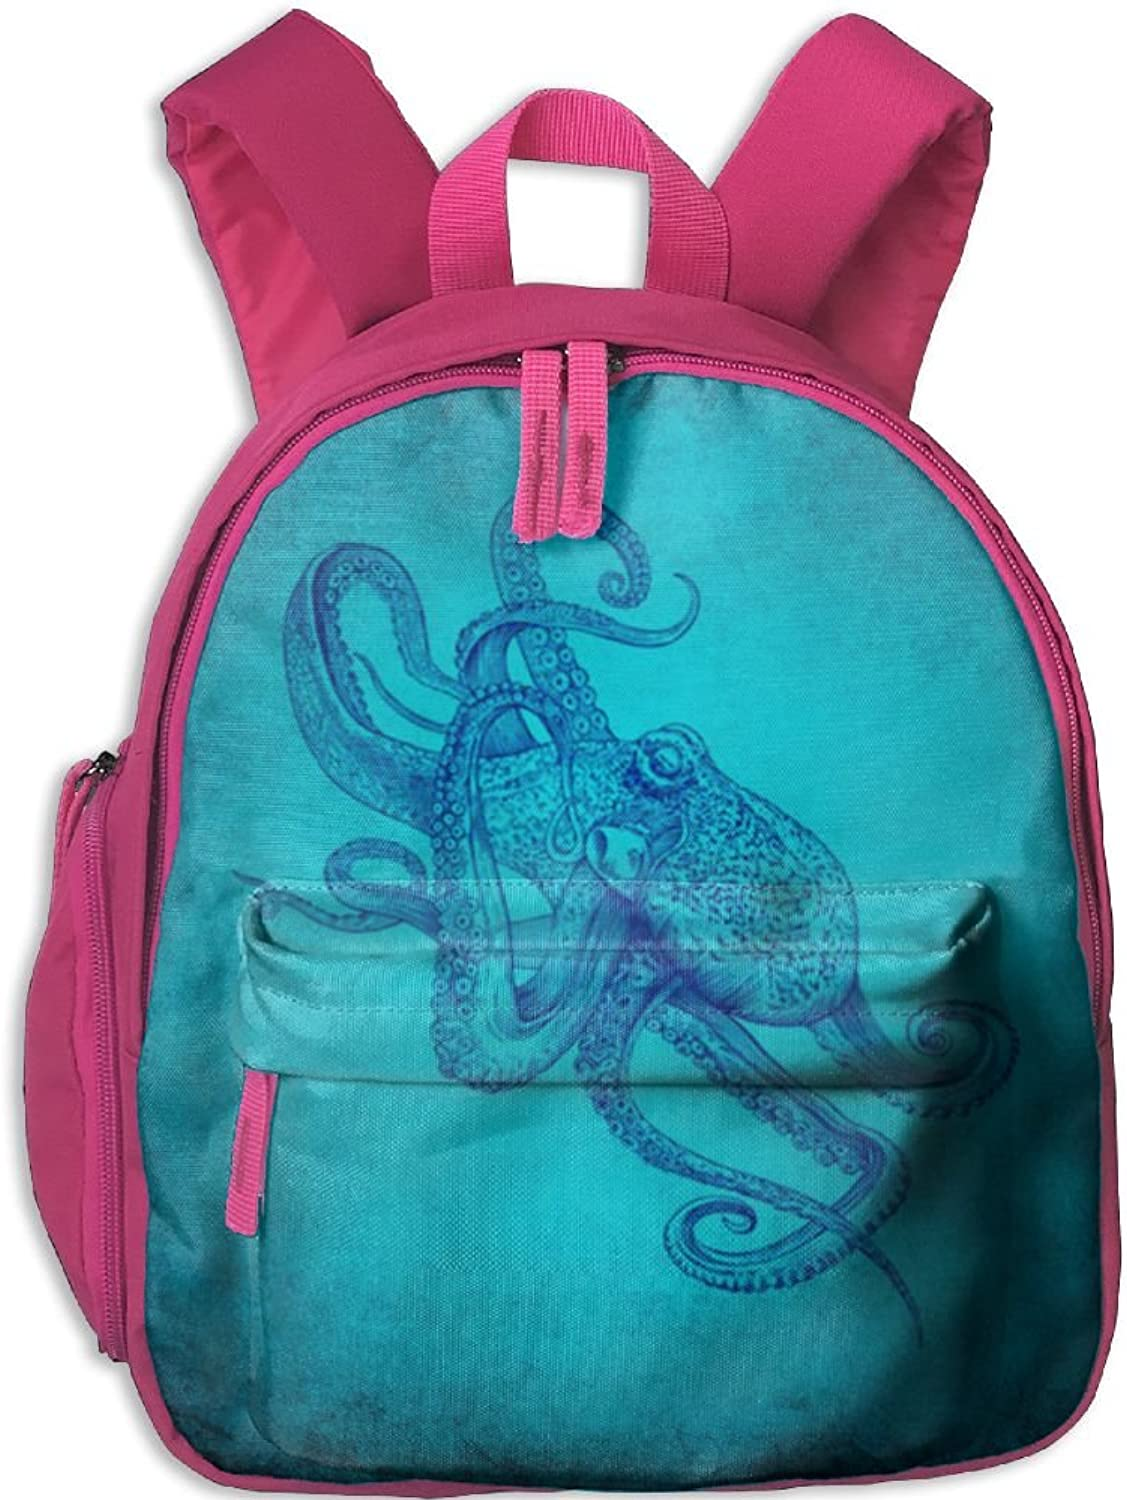 Pinta Light bluee Octopus Playful Cub Cool School Book Bag Backpacks for Girl's Boy's